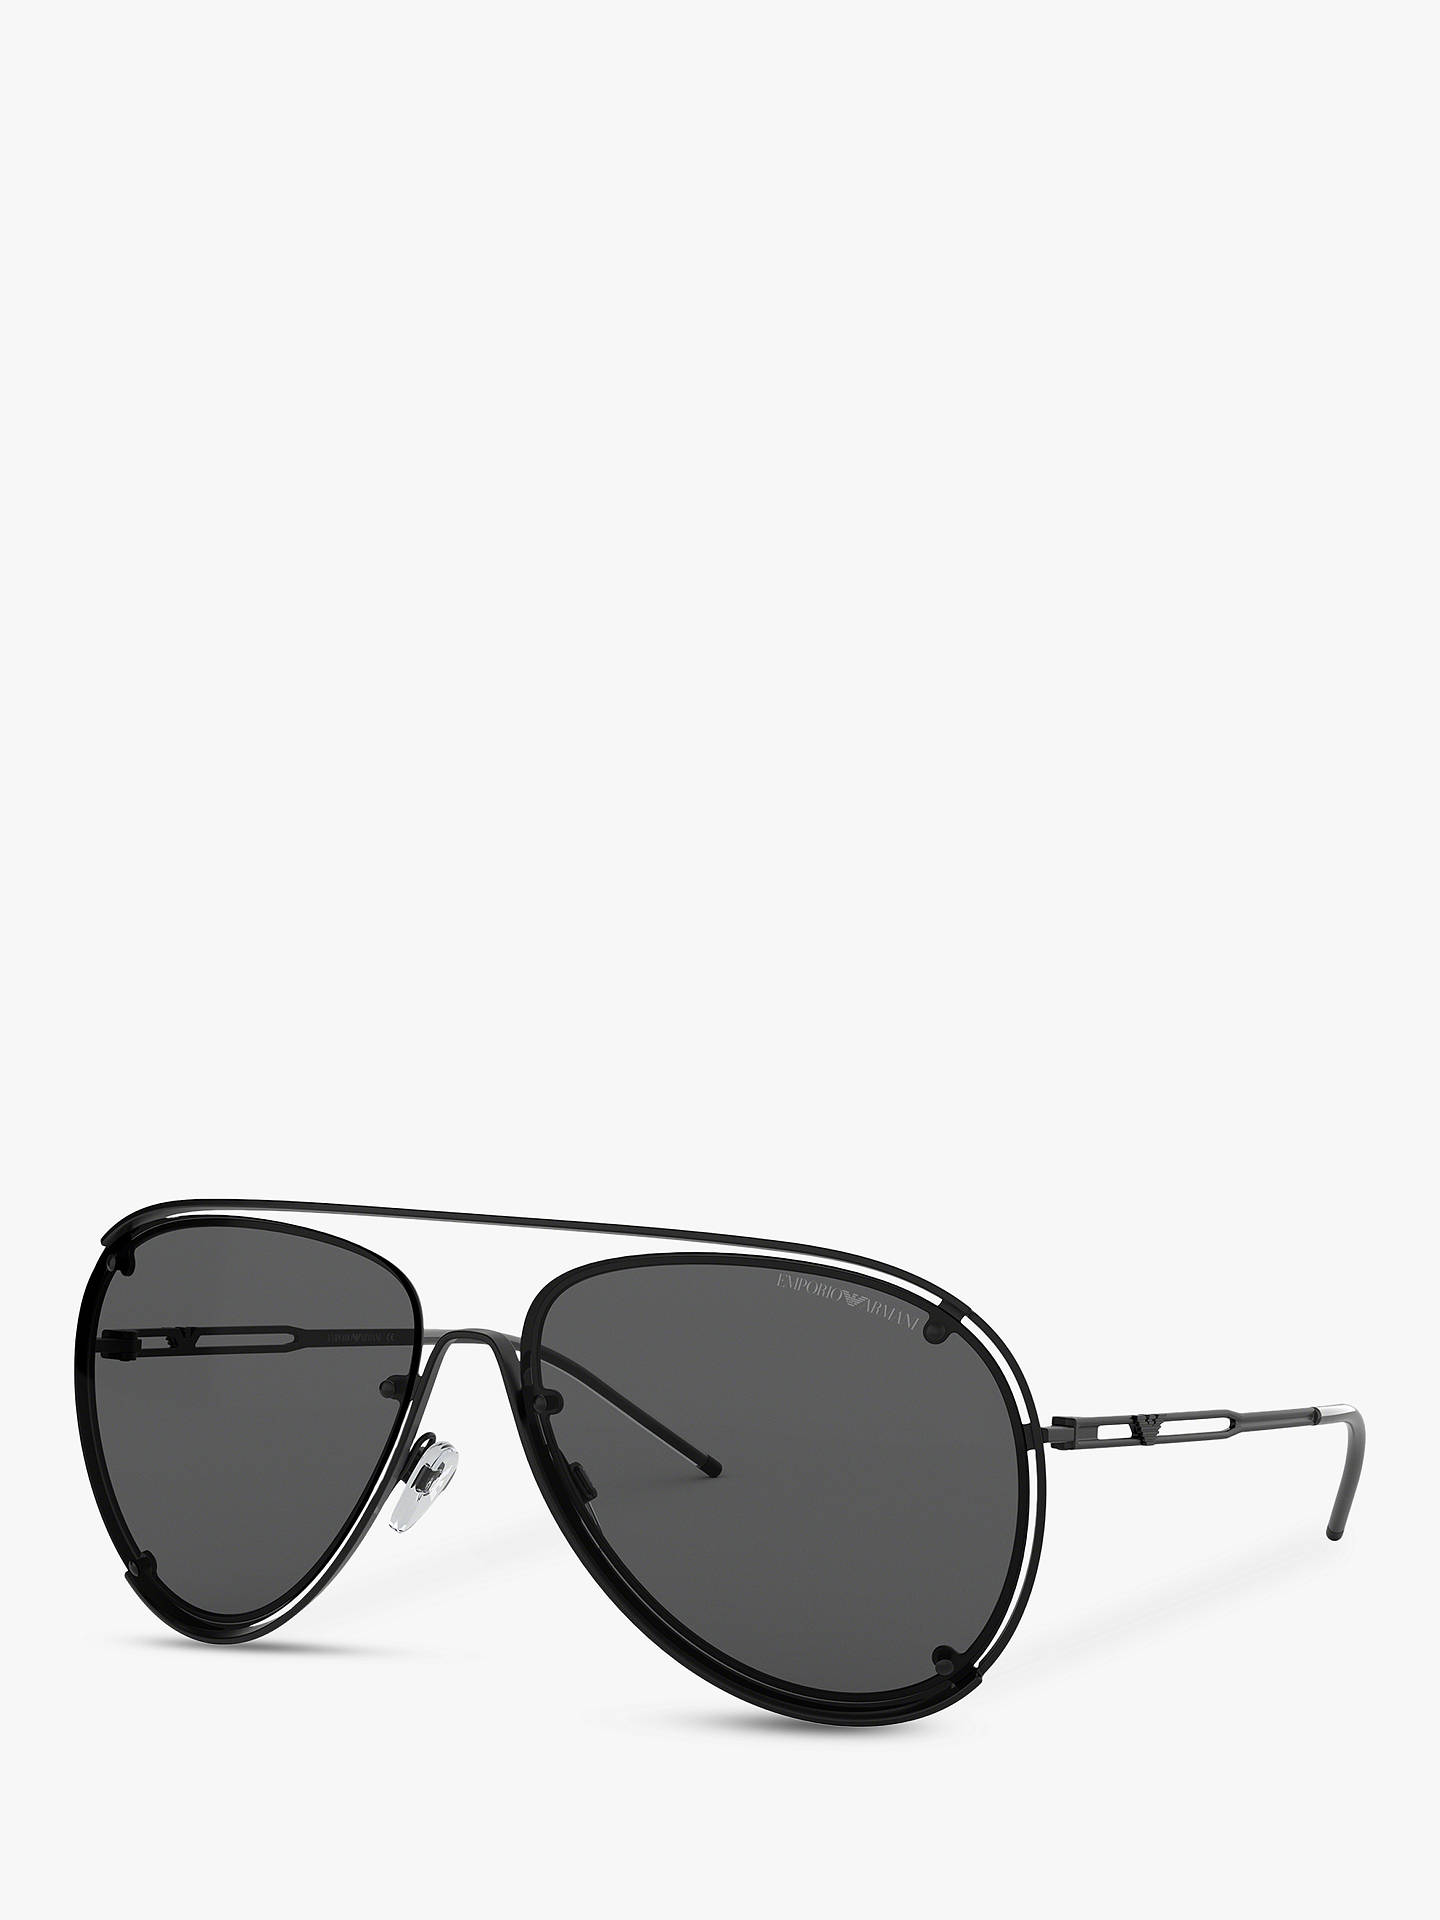 cdb33c52e51f Buy Emporio Armani EA2073 Men's Pilot Sunglasses, Matte Black/Grey Online  at johnlewis.